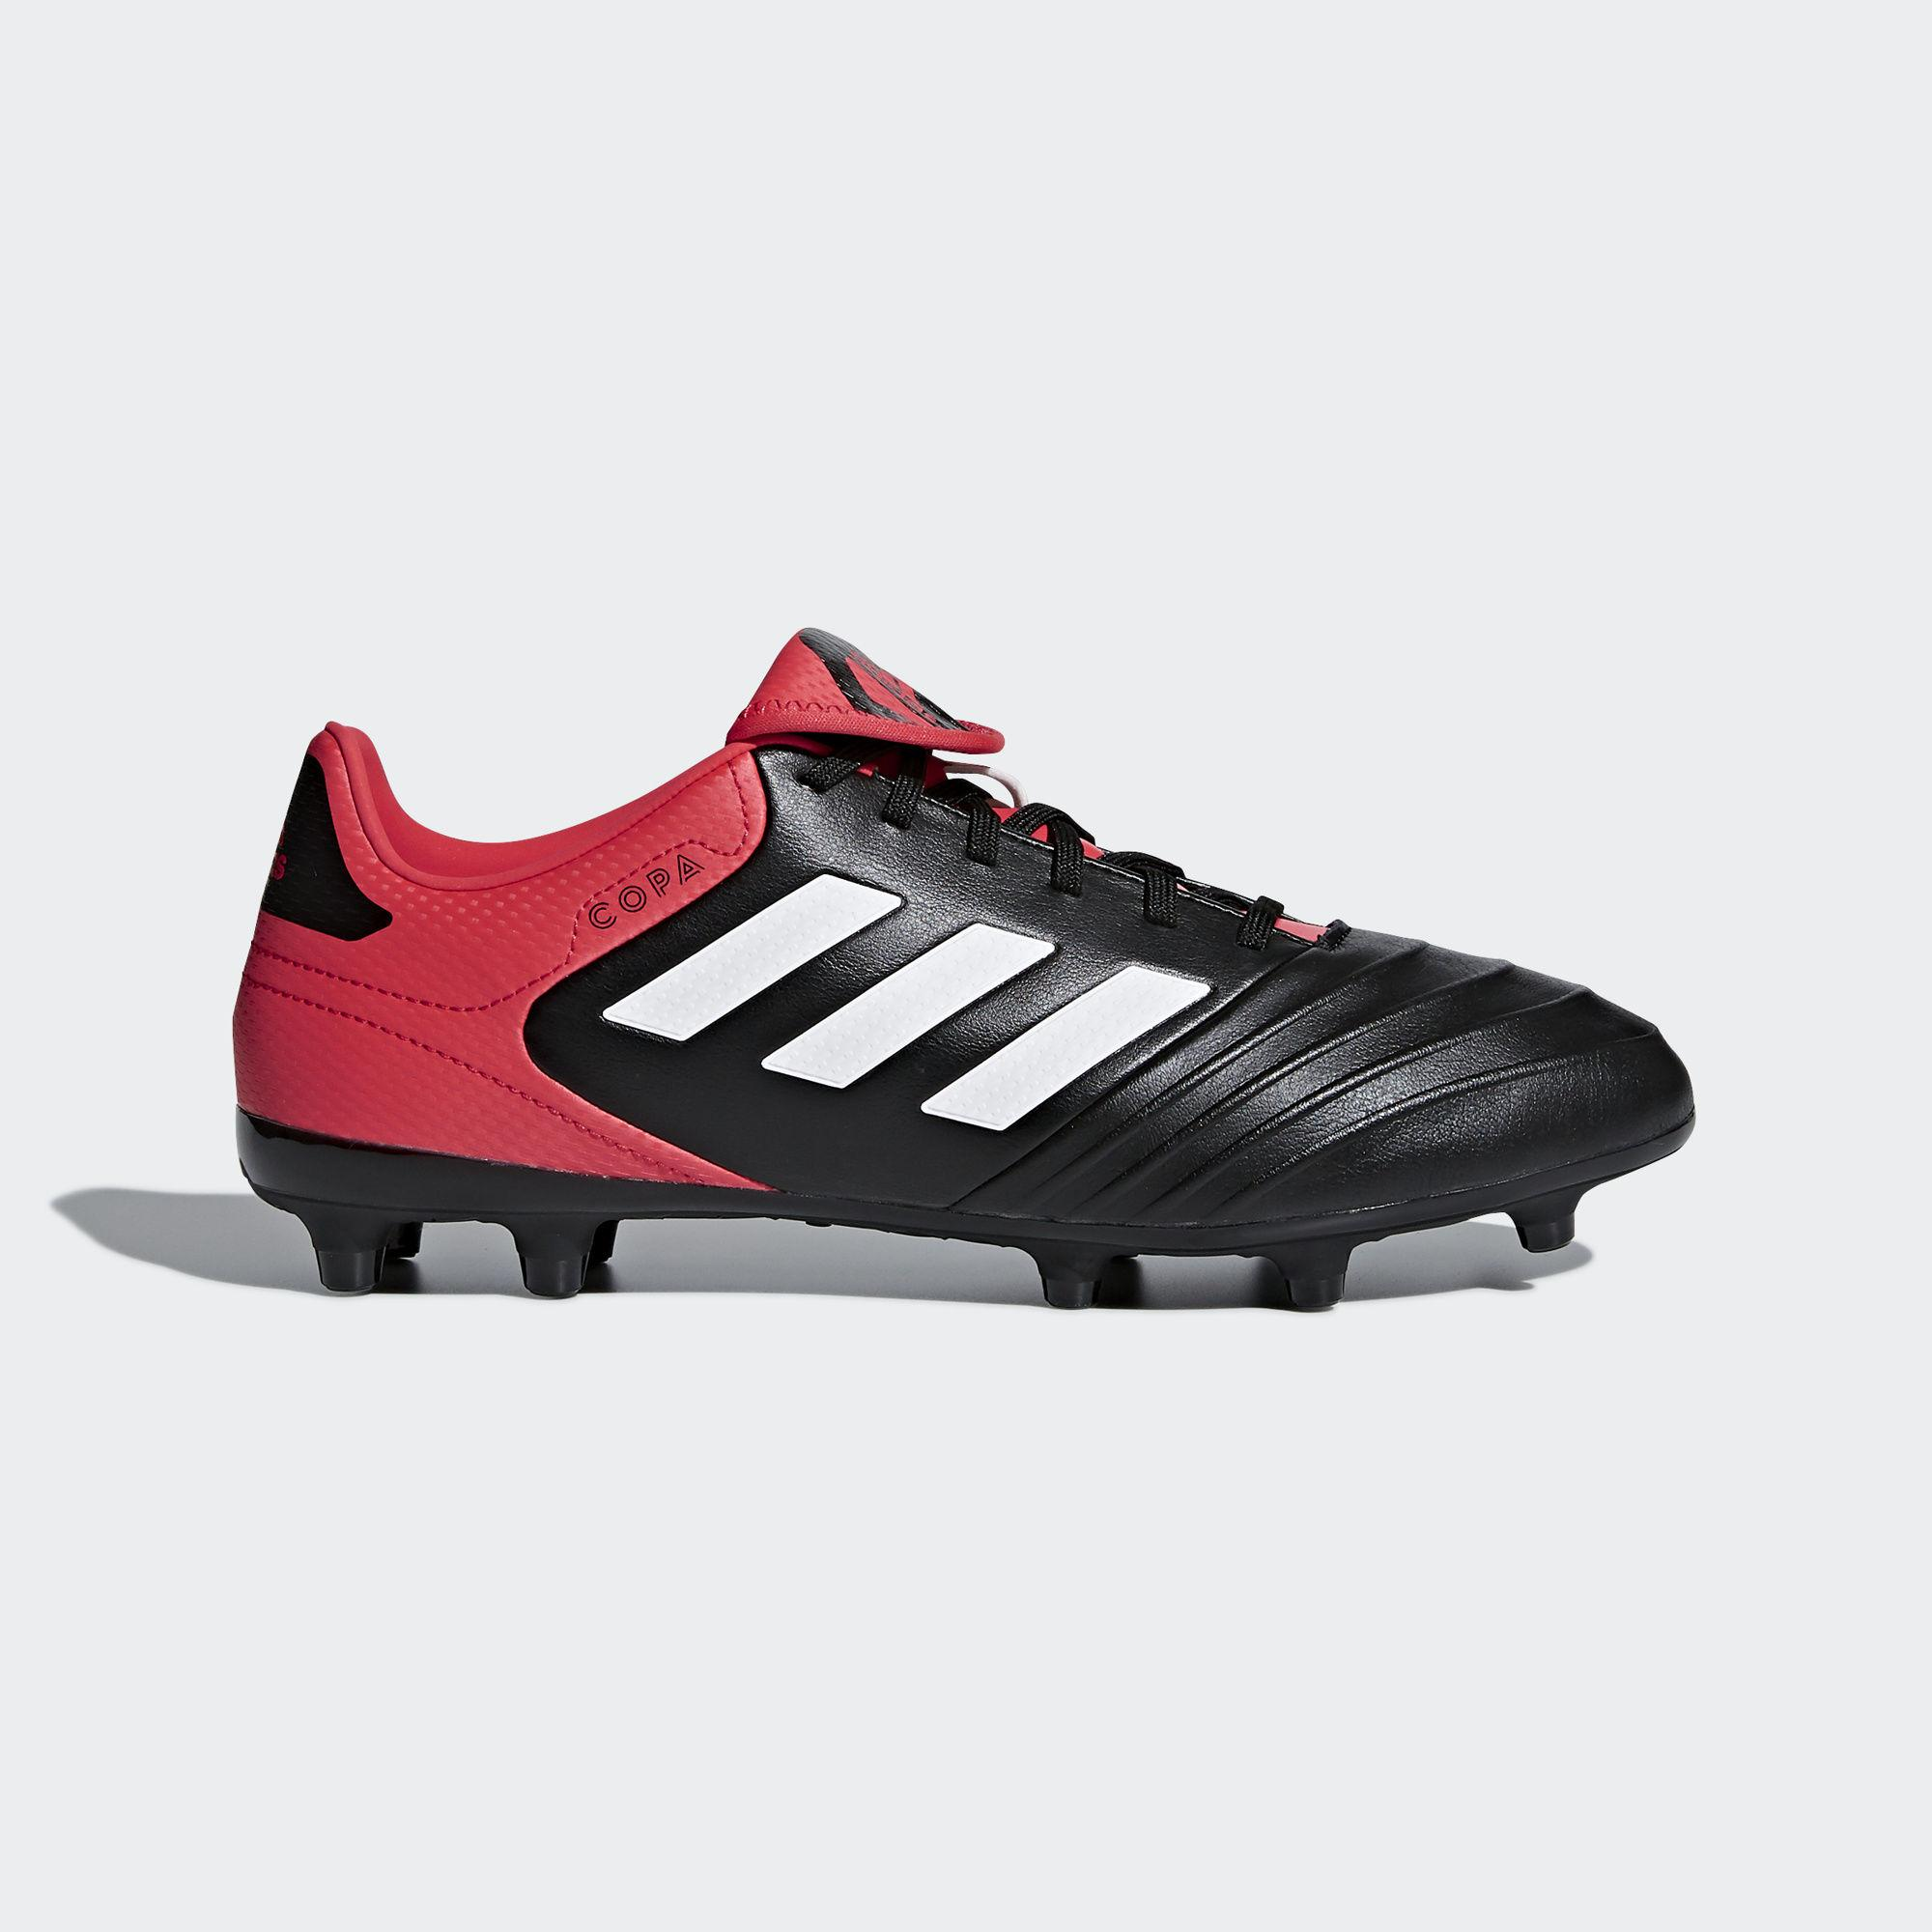 Adidas Chaussures De Football Copa 18.3 Fg